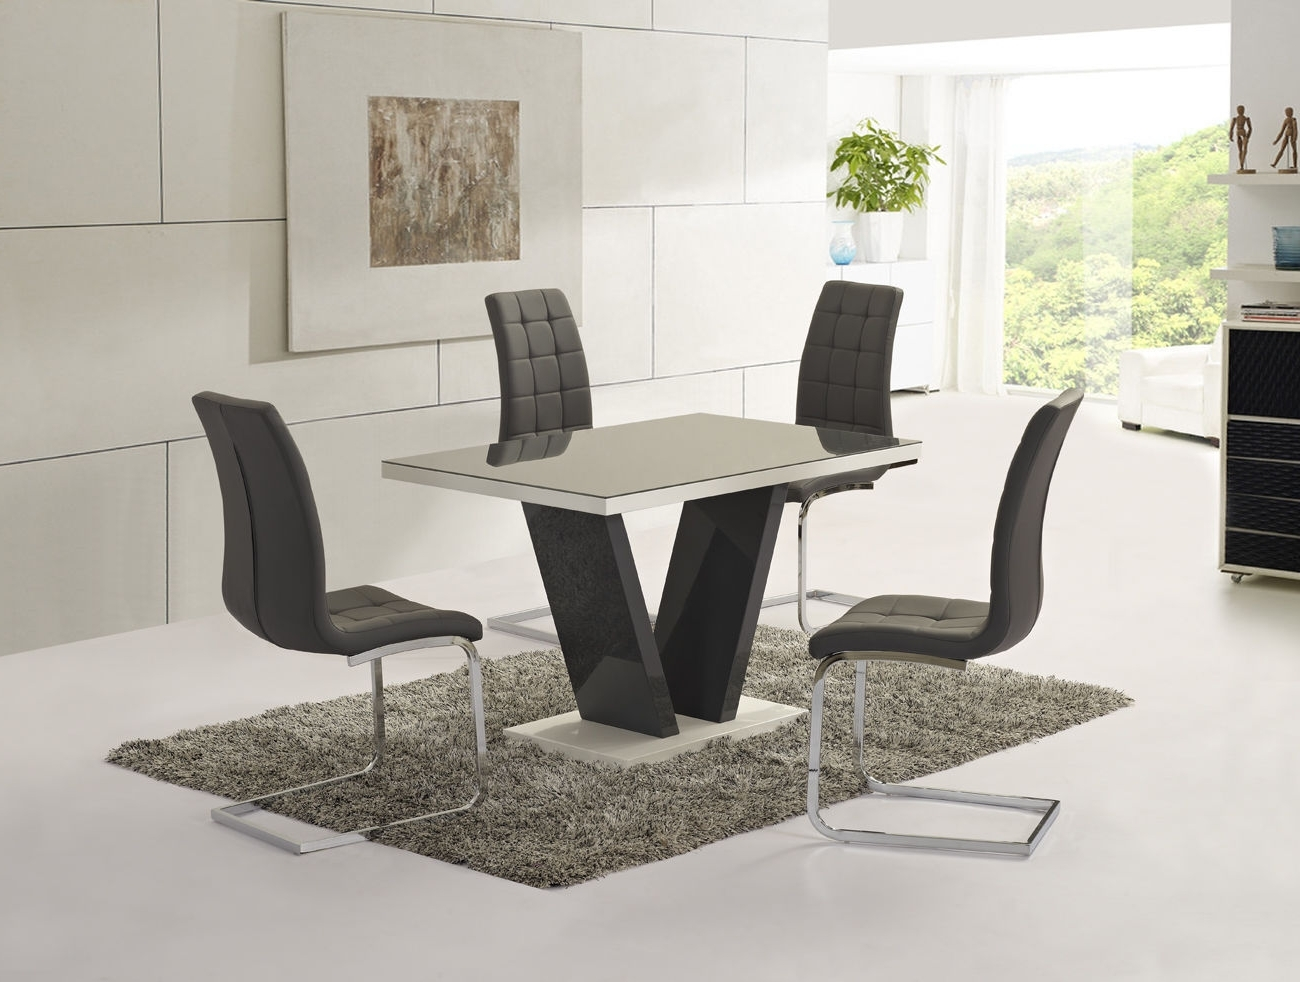 Most Recent Ga Vico Gloss Grey Glass Top Designer 160Cm Dining Set – 4 6 Grey For Black Gloss Dining Tables And 6 Chairs (View 17 of 25)